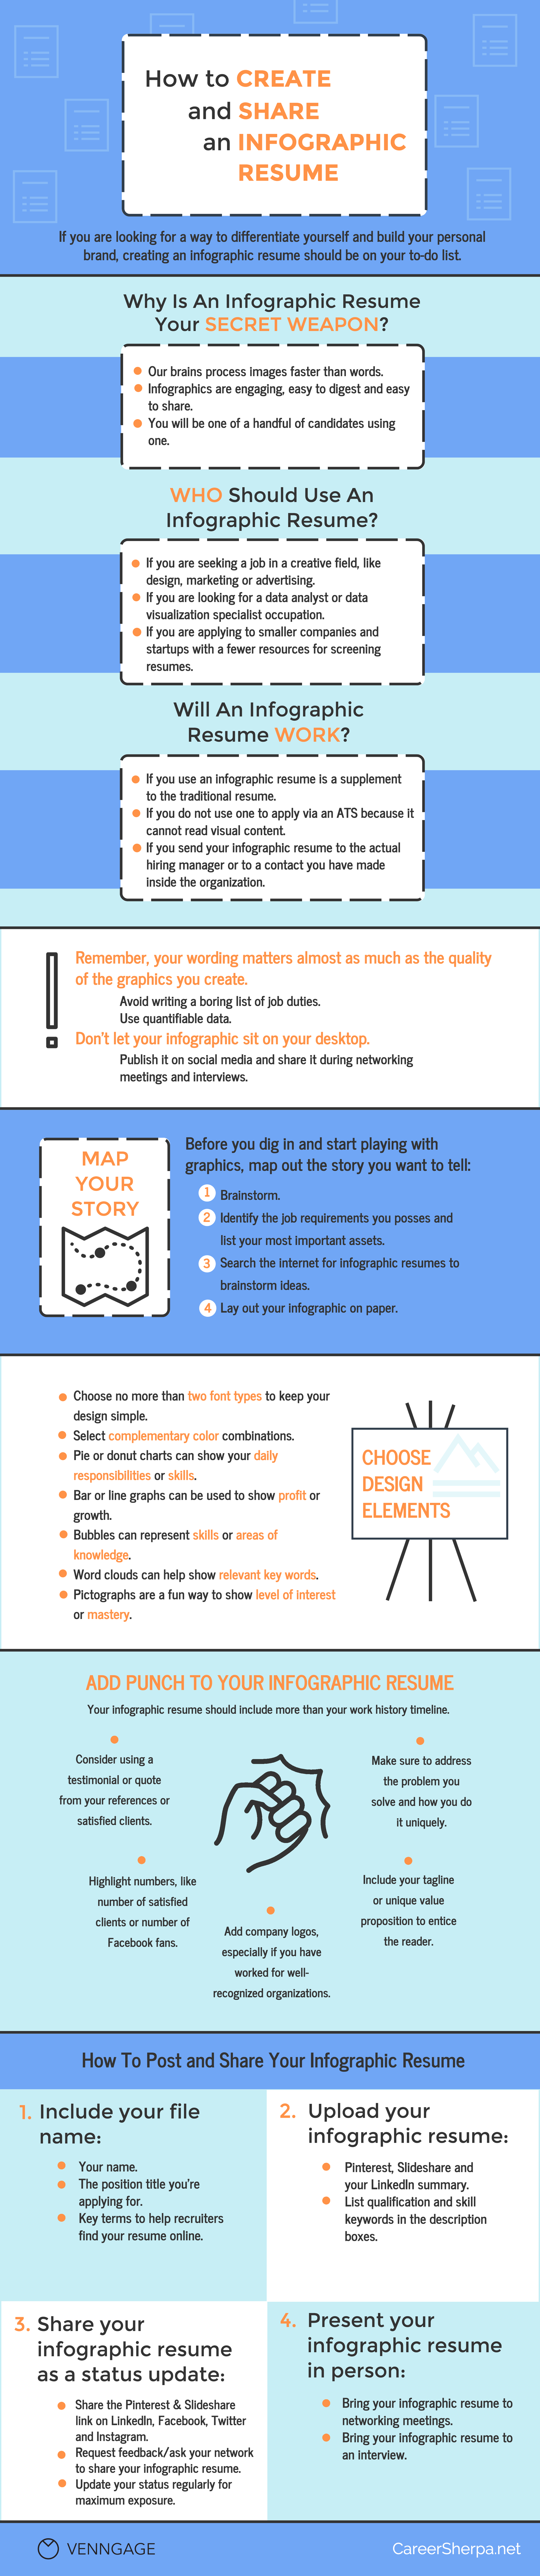 How to Create an Infographic Resume to Impress Recruiters [Infographic]